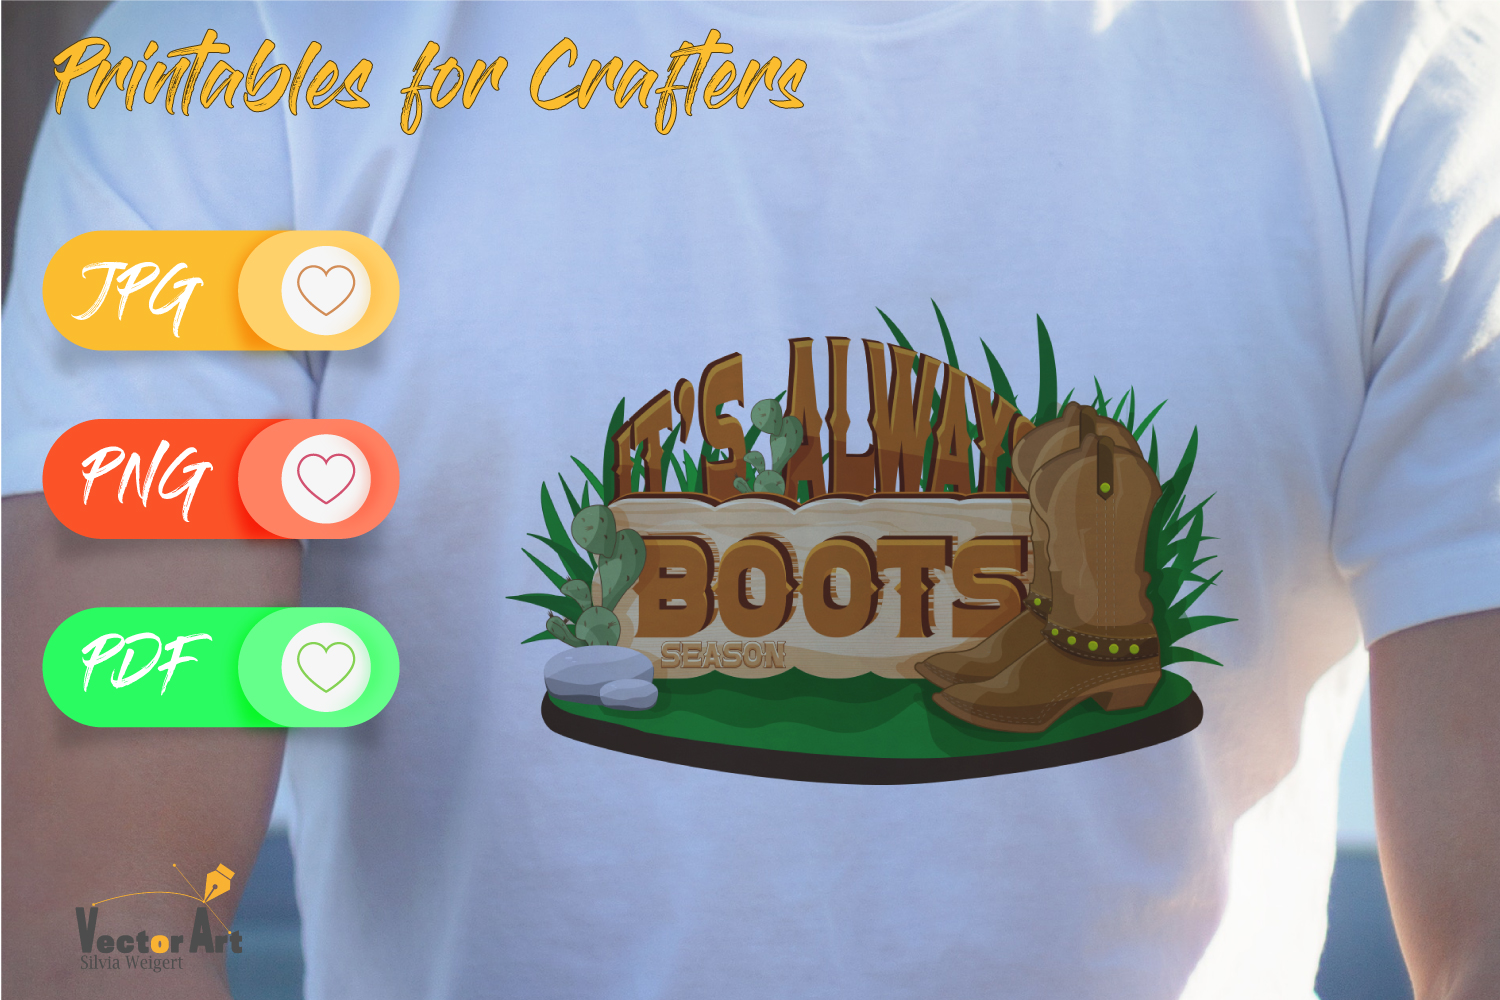 It's always boot season - Printables for Crafters example image 2